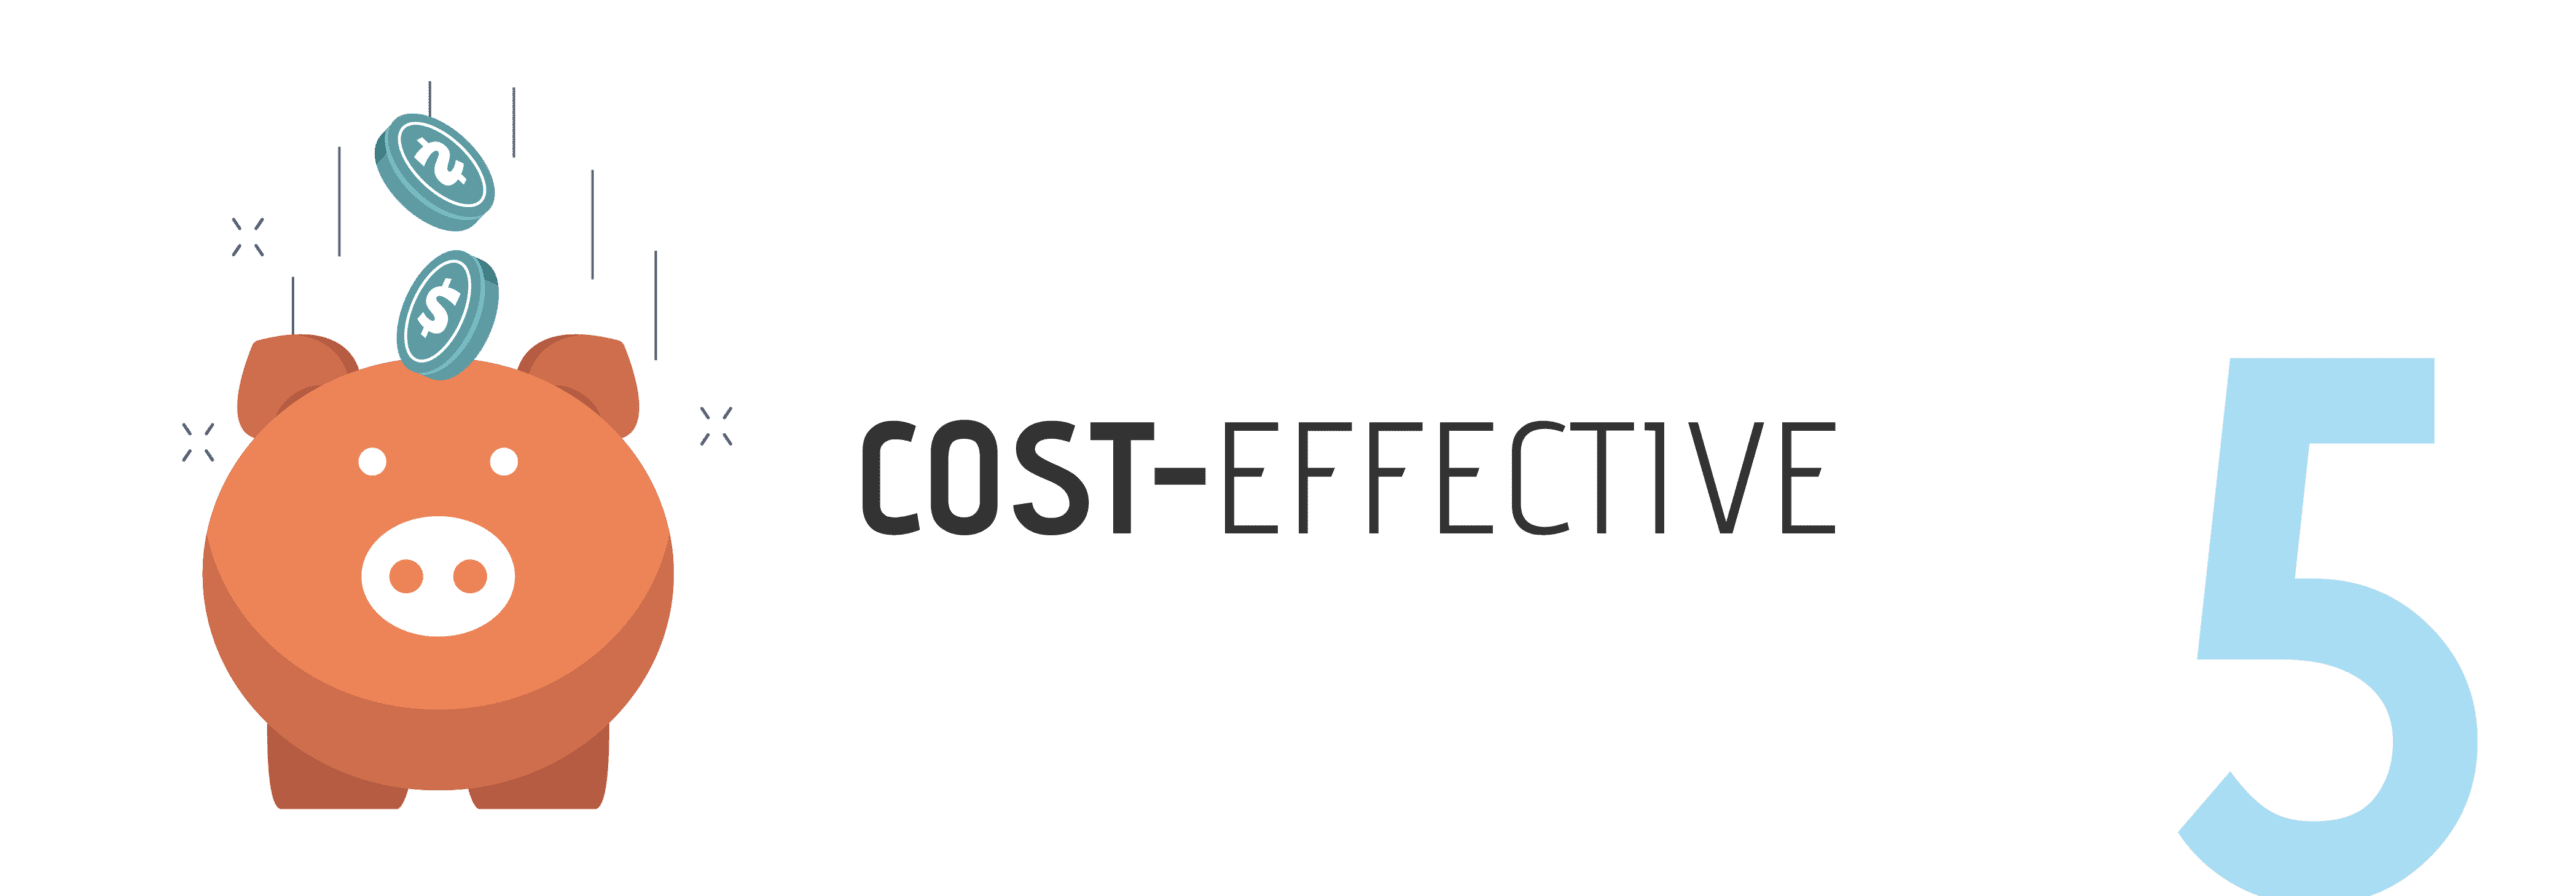 Cost Effectiveness In Digital Marketing Benefits Snippet